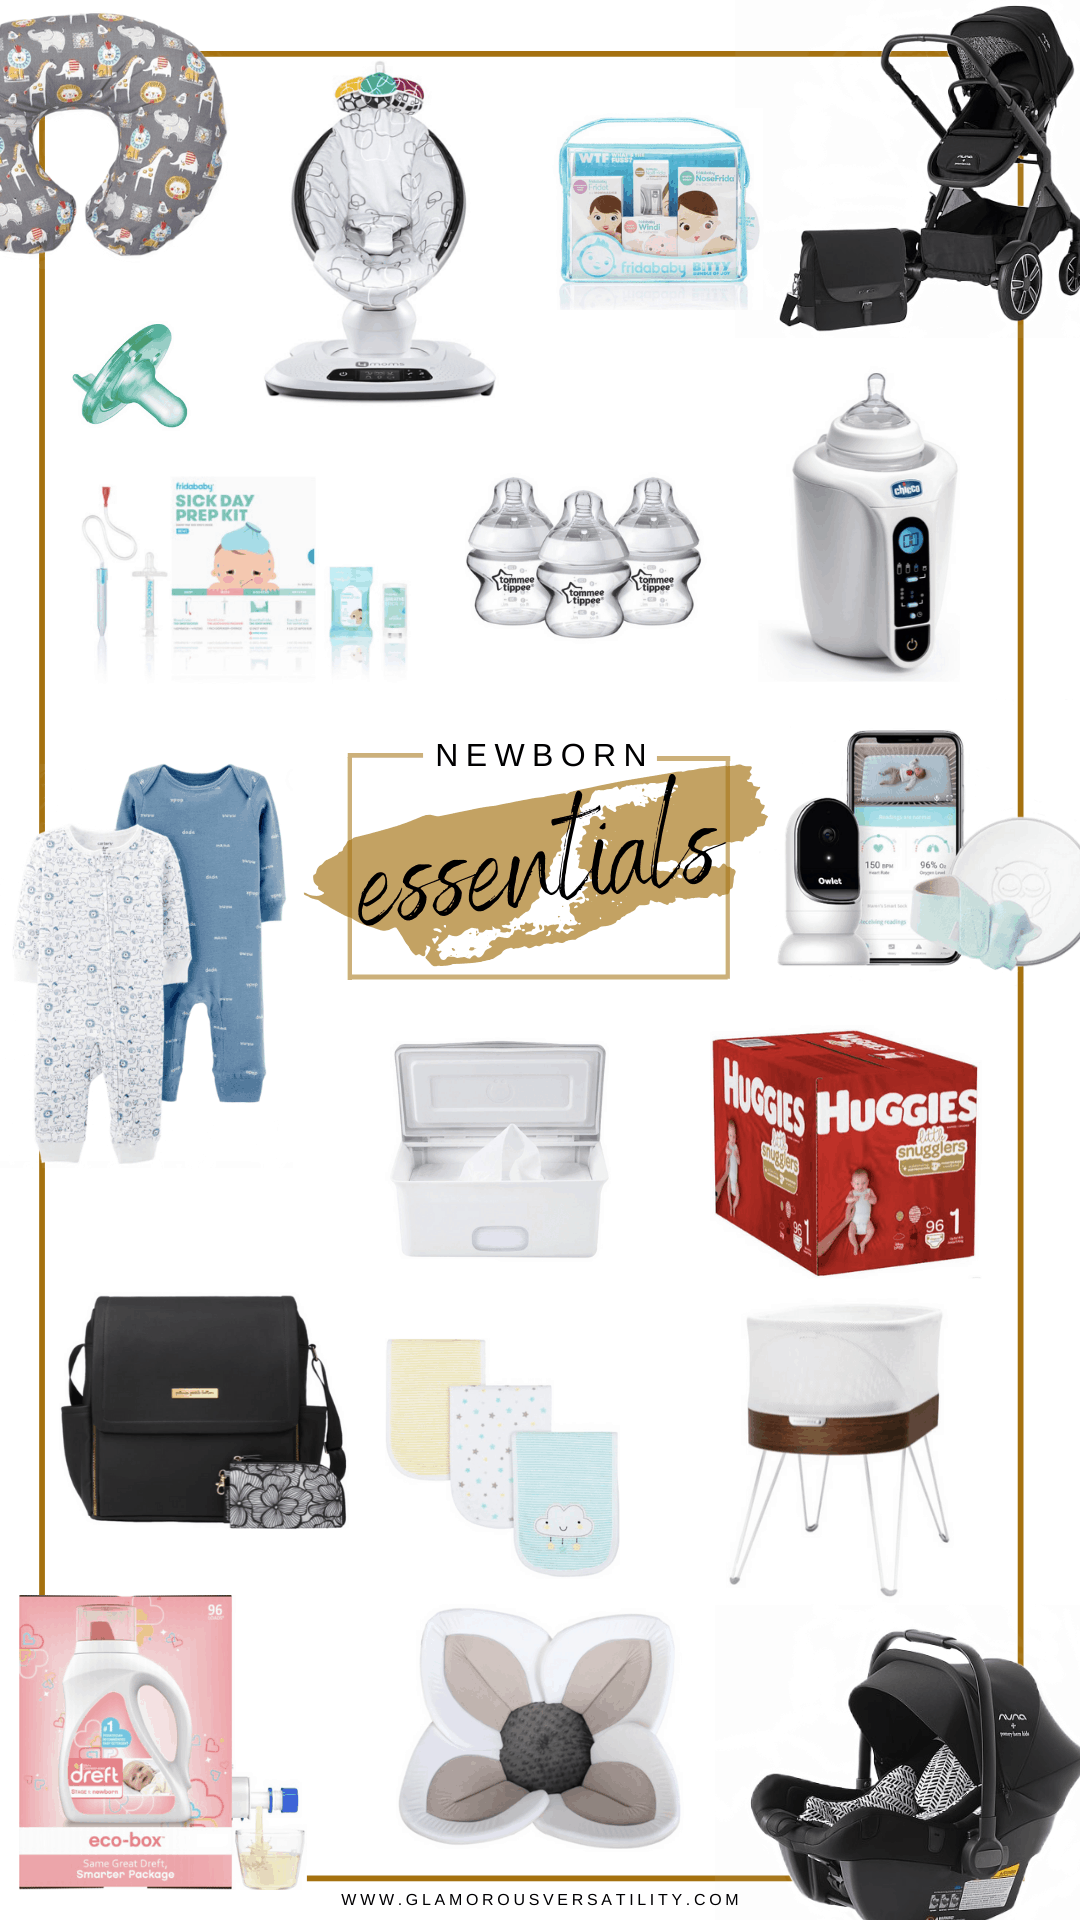 Newborn Baby Essentials by popular Dallas motherhood blog, Glamorous Versatility: collage image of a box of Huggies diapers, Boppy pillow, Tommee Tippee bottles, Chicco bottle sterilizer, Owlet baby monitor, Dreft laundry detergent, Nuna carseat, Nuna stroller, fridababy sick day prep kit, Carter's onesies, 4moms momaroo baby swing, white baby wipes container, burp cloths, basinet, pacifier, and a baby bath.